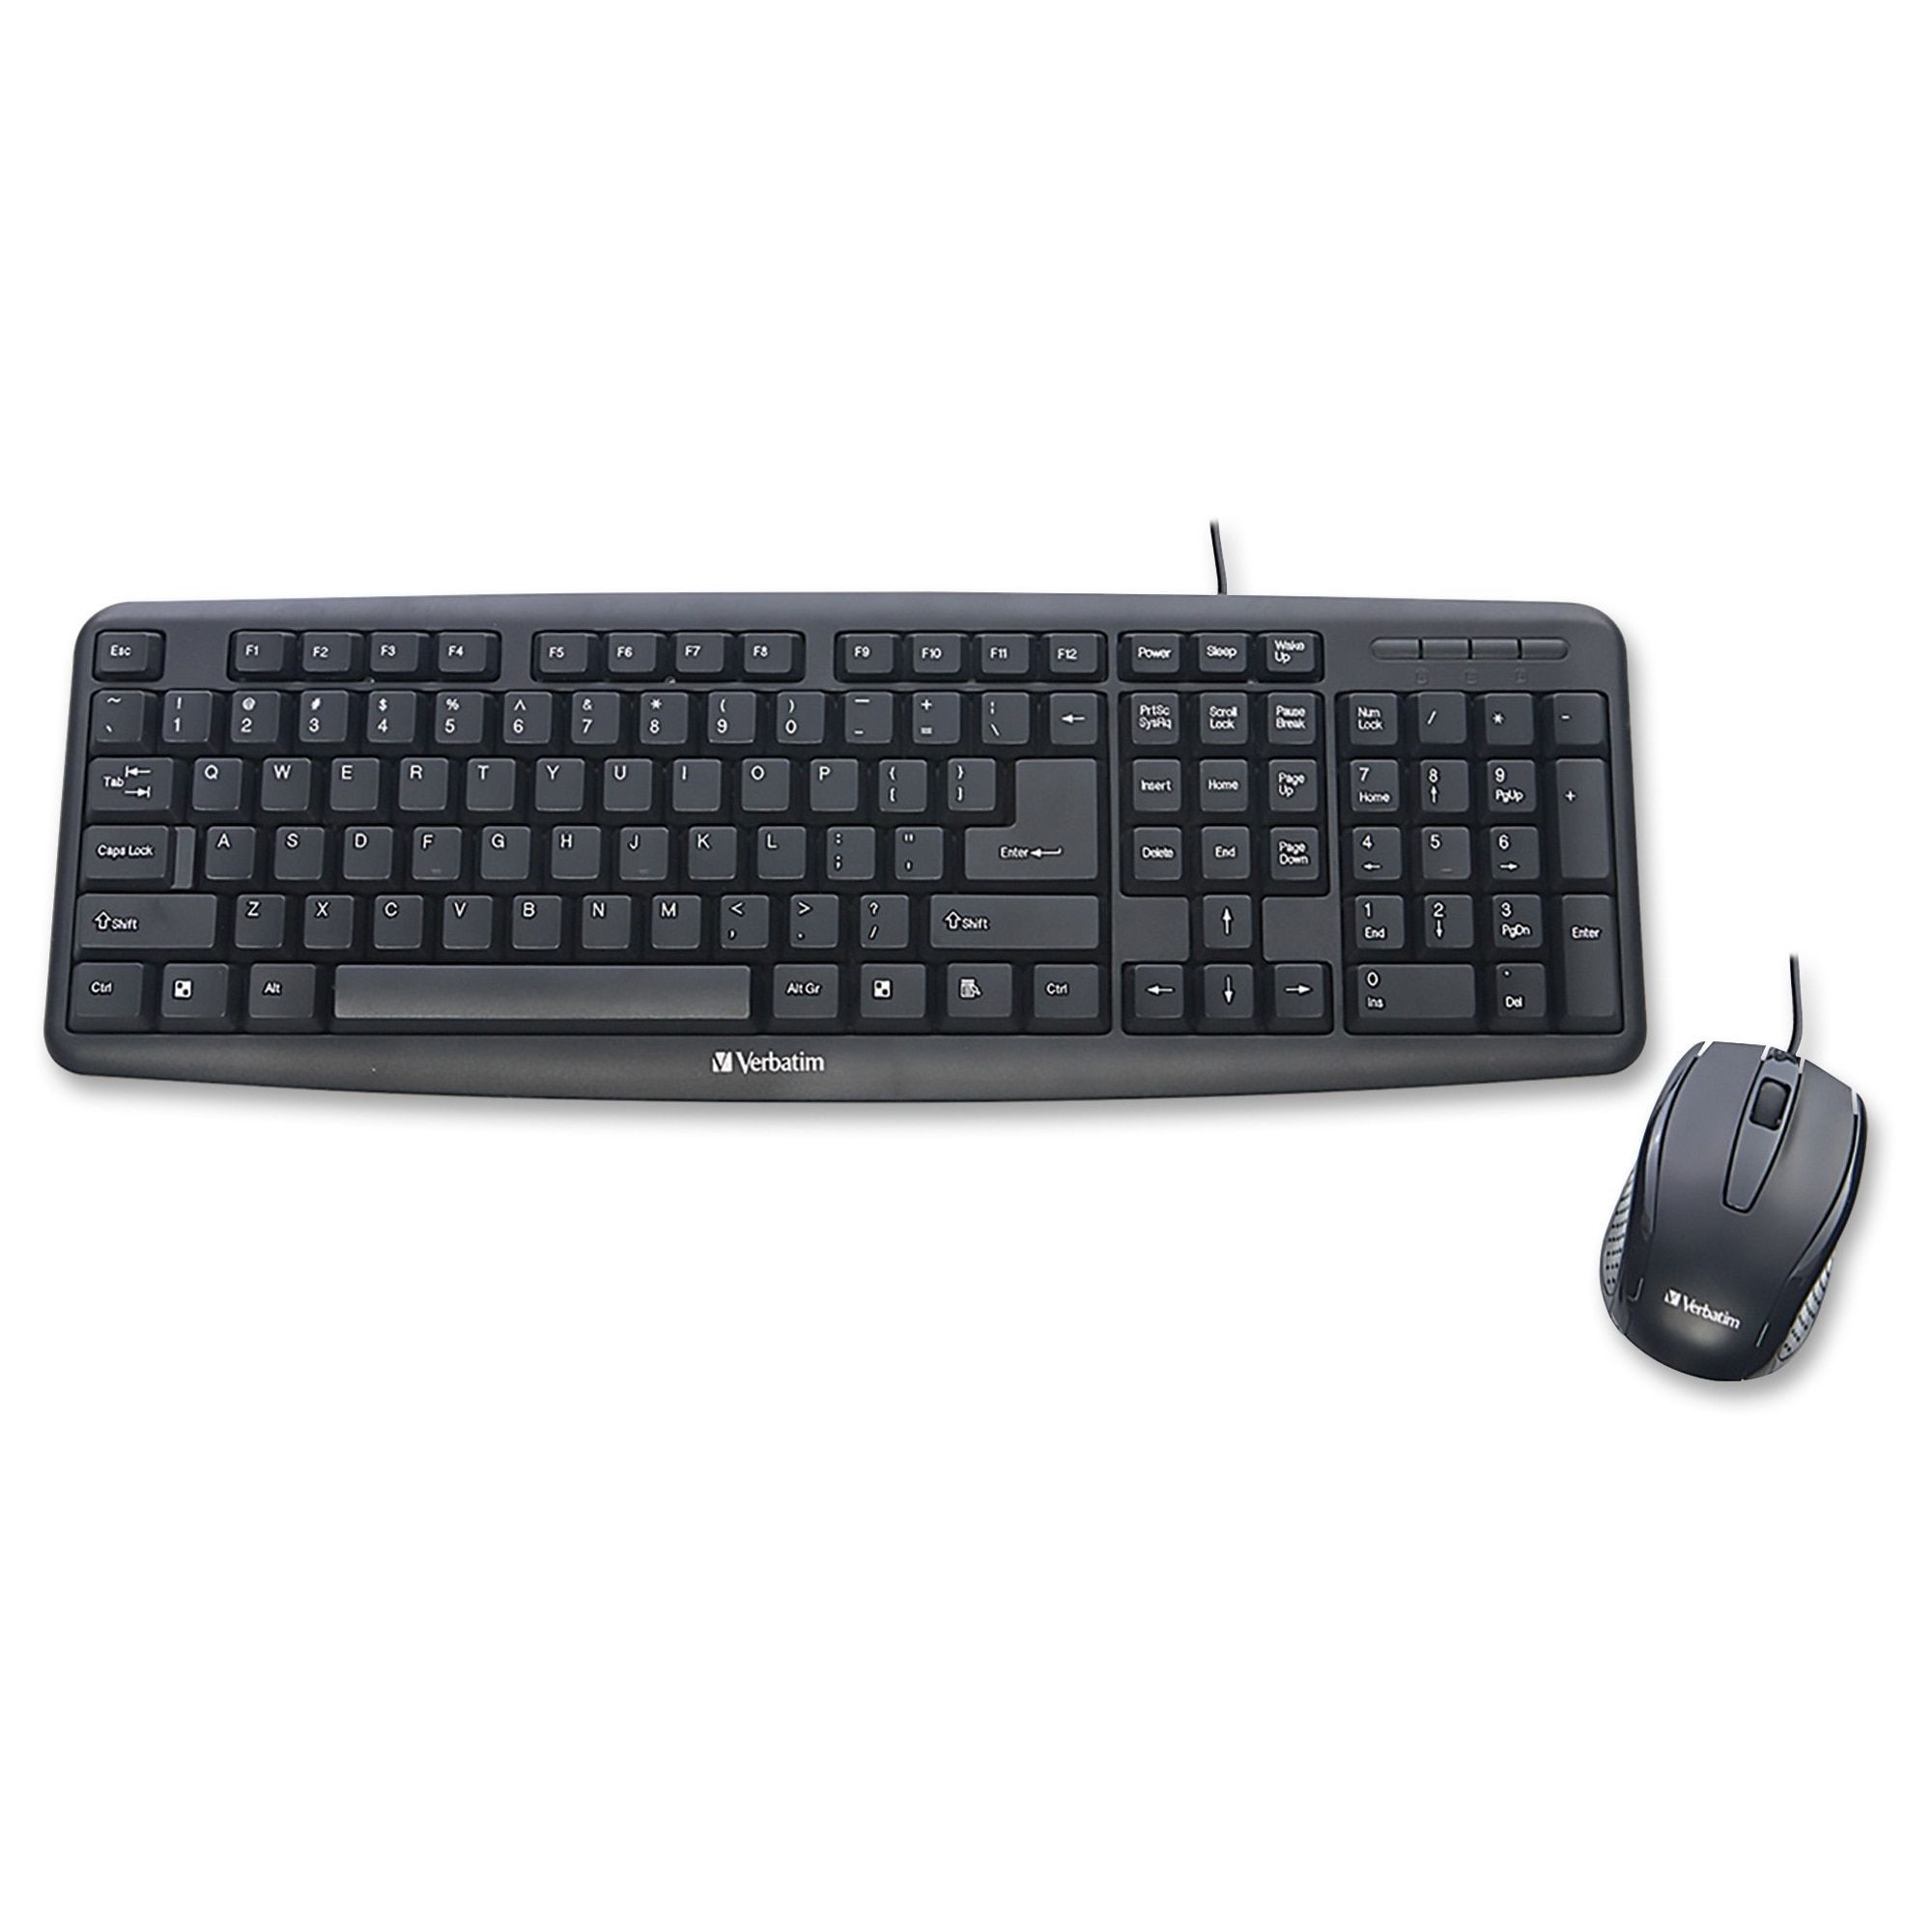 c597d3cd1ca78 Verbatim Slimline Corded USB Keyboard and Mouse-Black